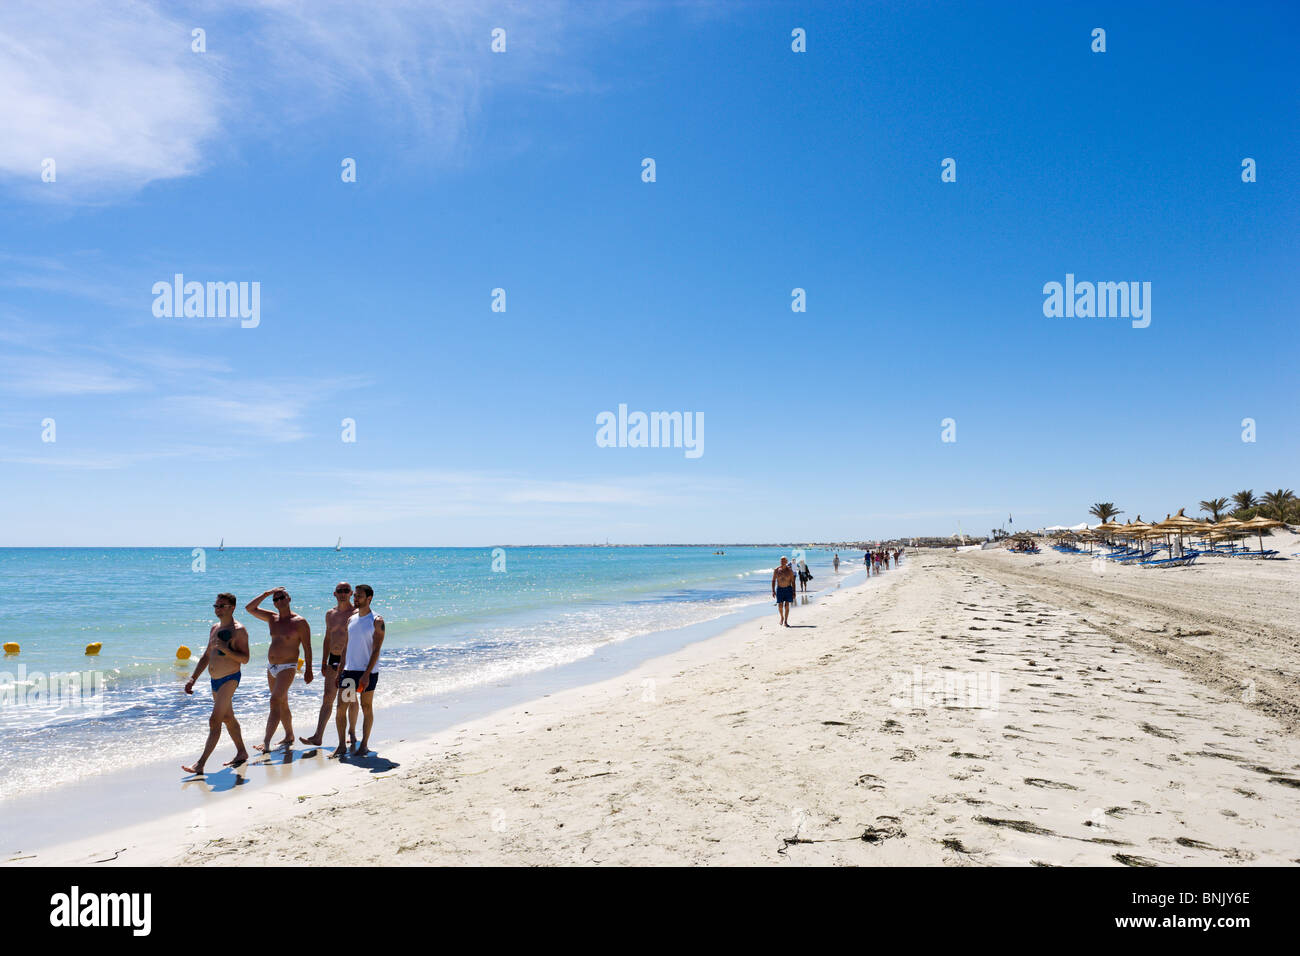 Beach in the hotel zone near to the Hotel Club Caribbean World, Aghir, Djerba, Tunisia - Stock Image